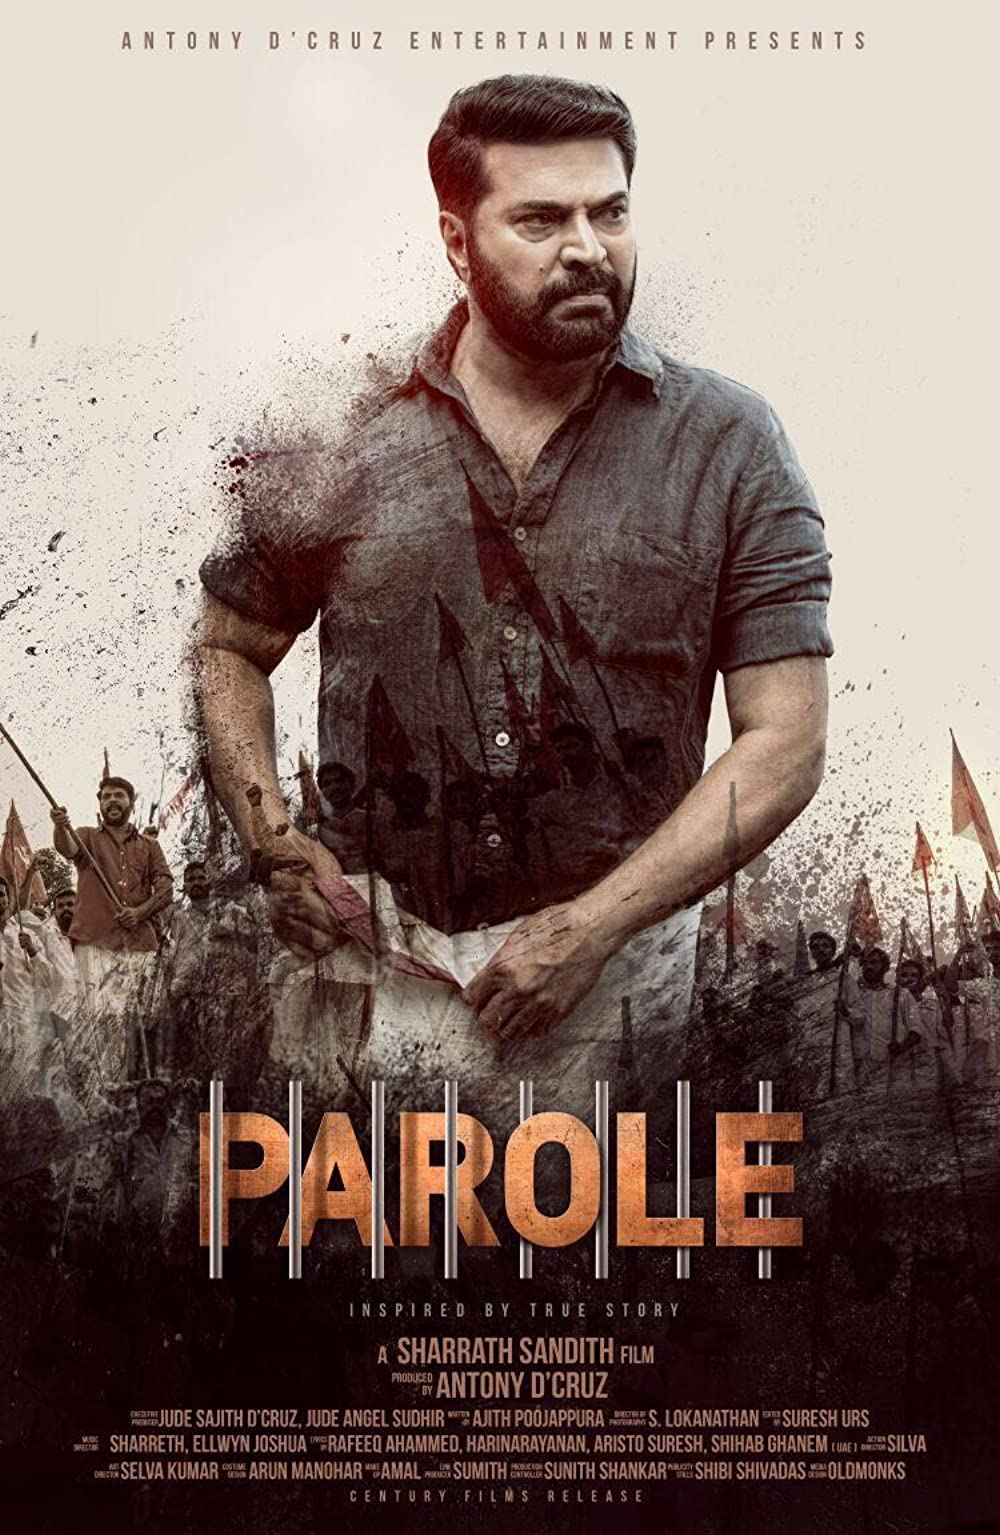 Parol (Parole) 2021 Hindi Dubbed 480p HDRip 400MB x264 AAC